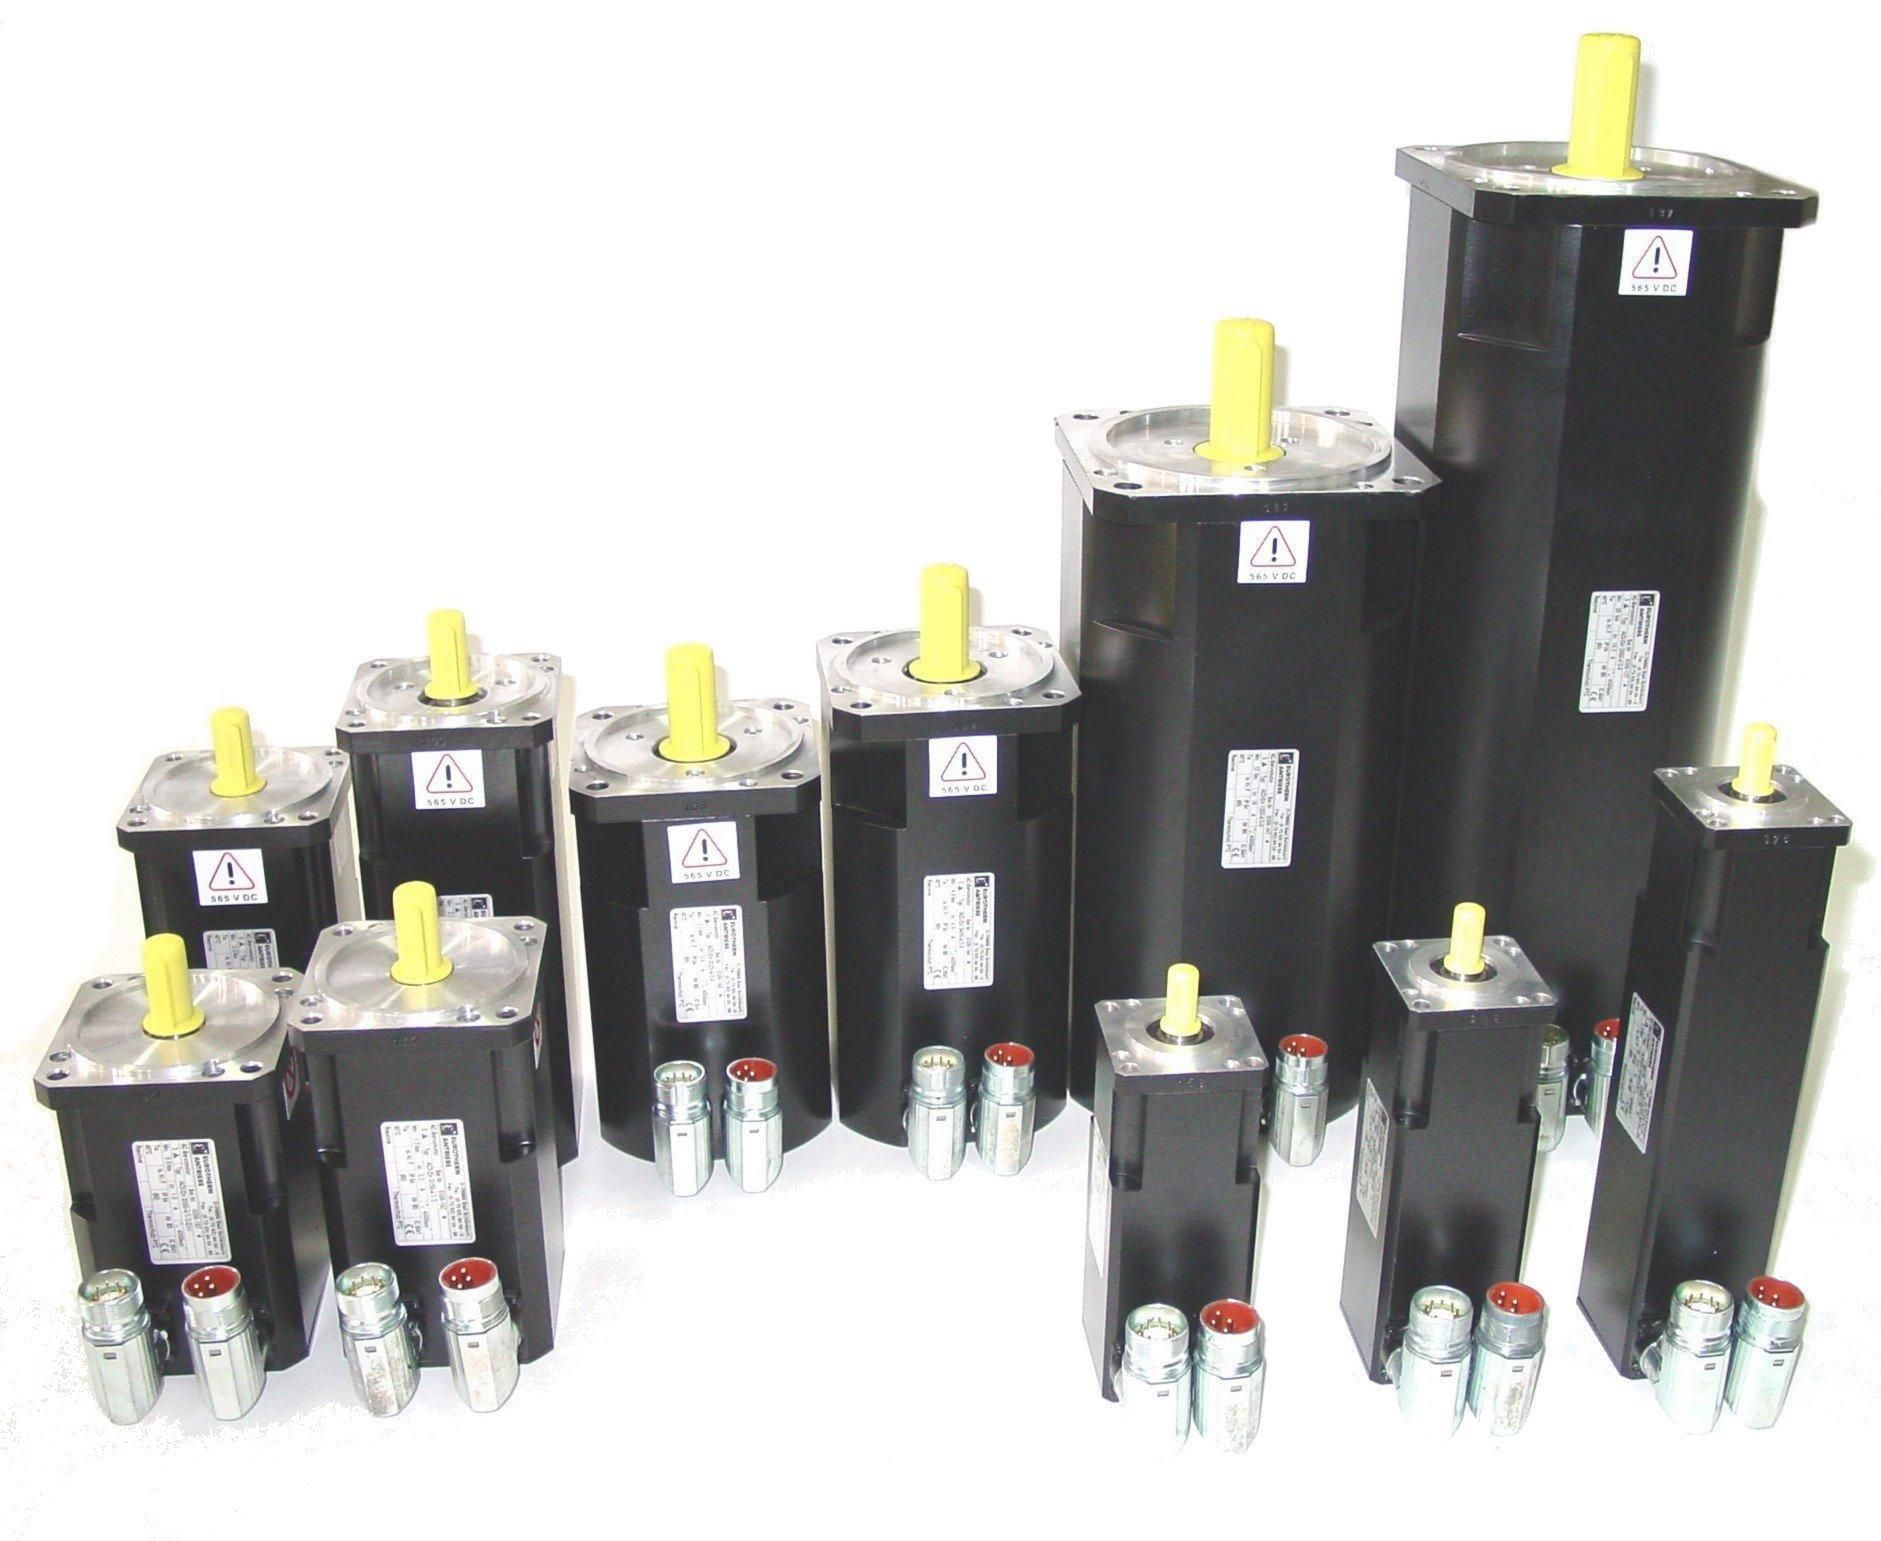 Discontinued servo motor range is available from Motor Technology